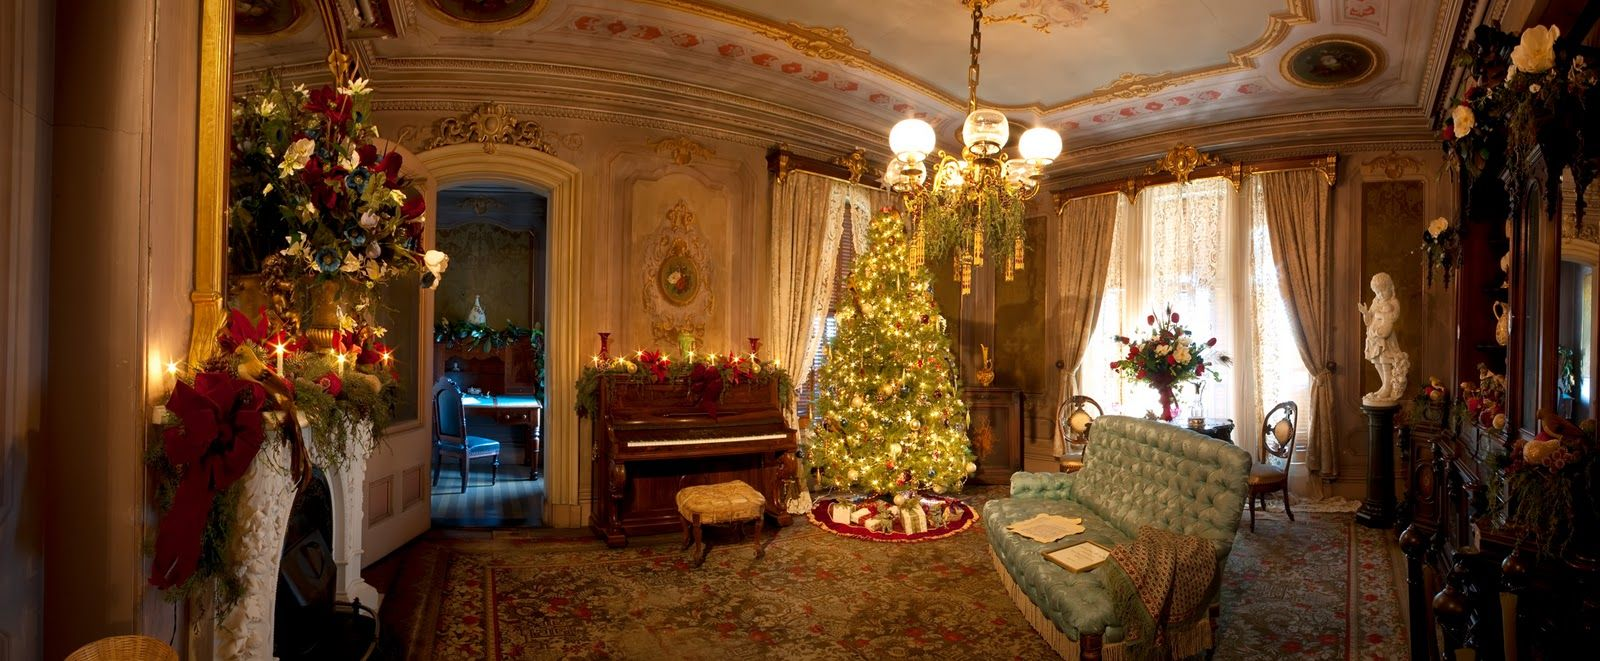 Victoria Mansion After Last Year S First Snowstorm The Grand Dining Room Decked Out For Christmas Victorian Christmas Victorian Rooms Victorian Home Decor